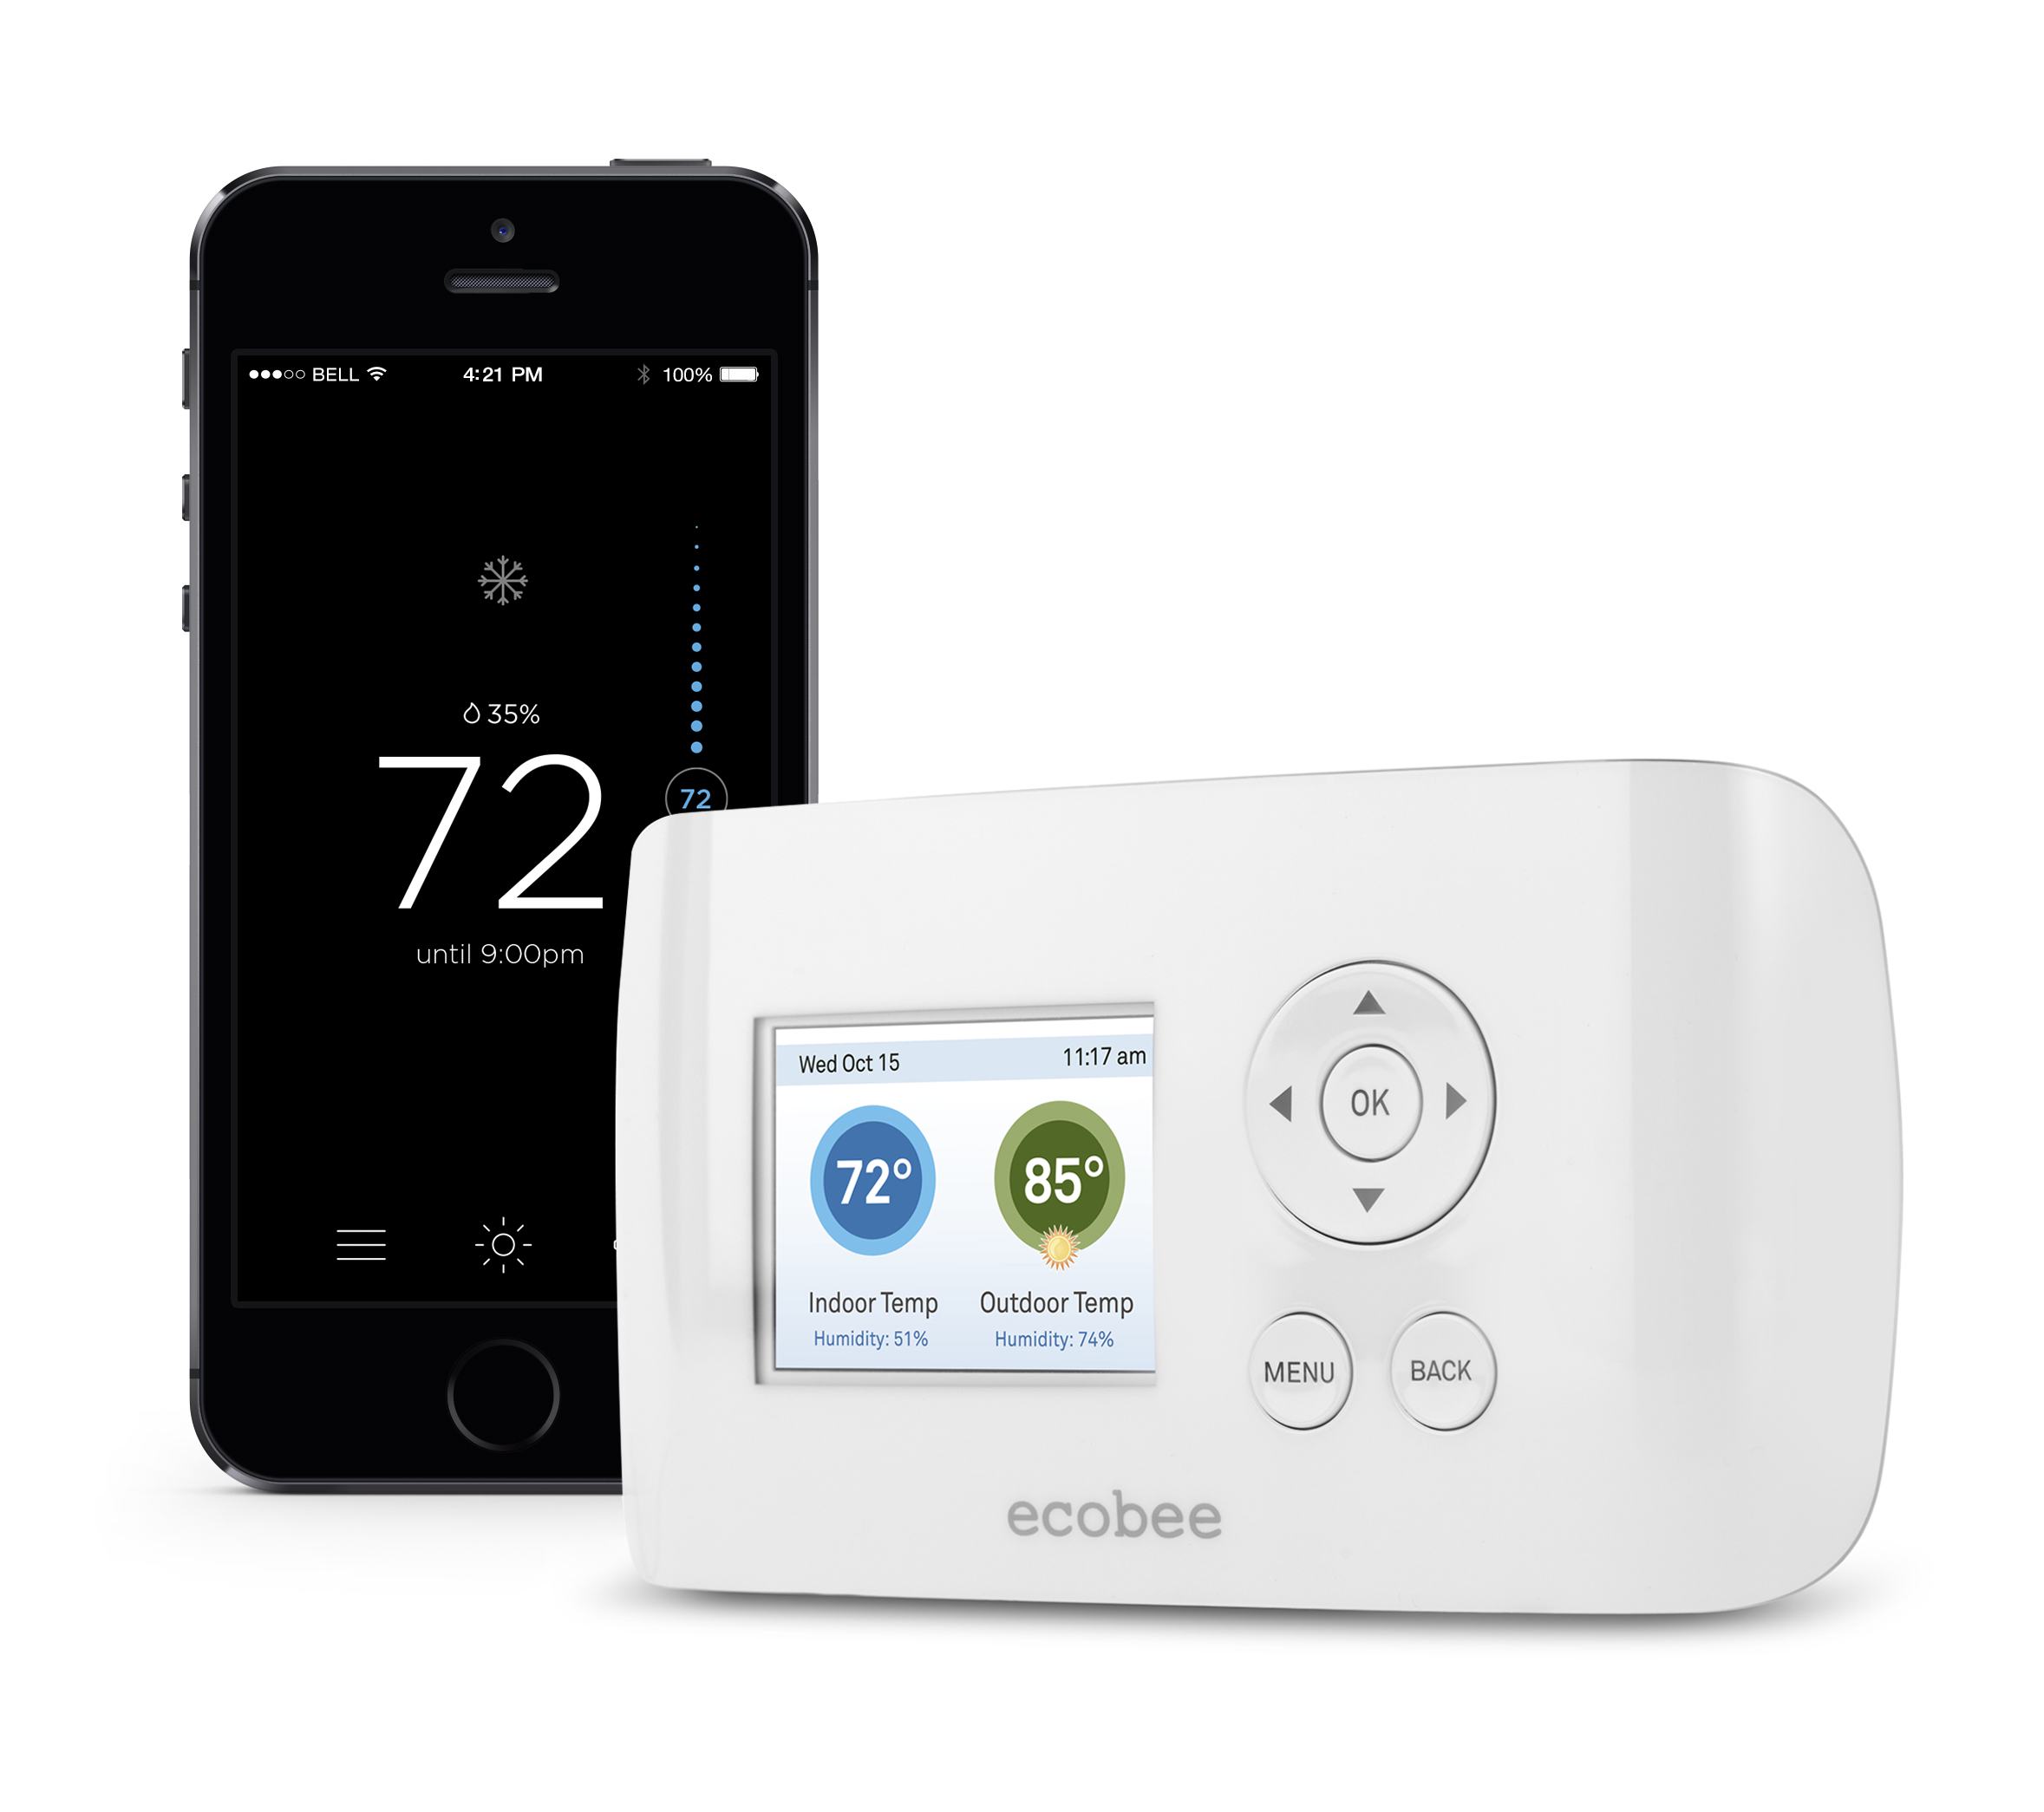 review ecobee smart si smart thermostat smart thermostat guide. Black Bedroom Furniture Sets. Home Design Ideas